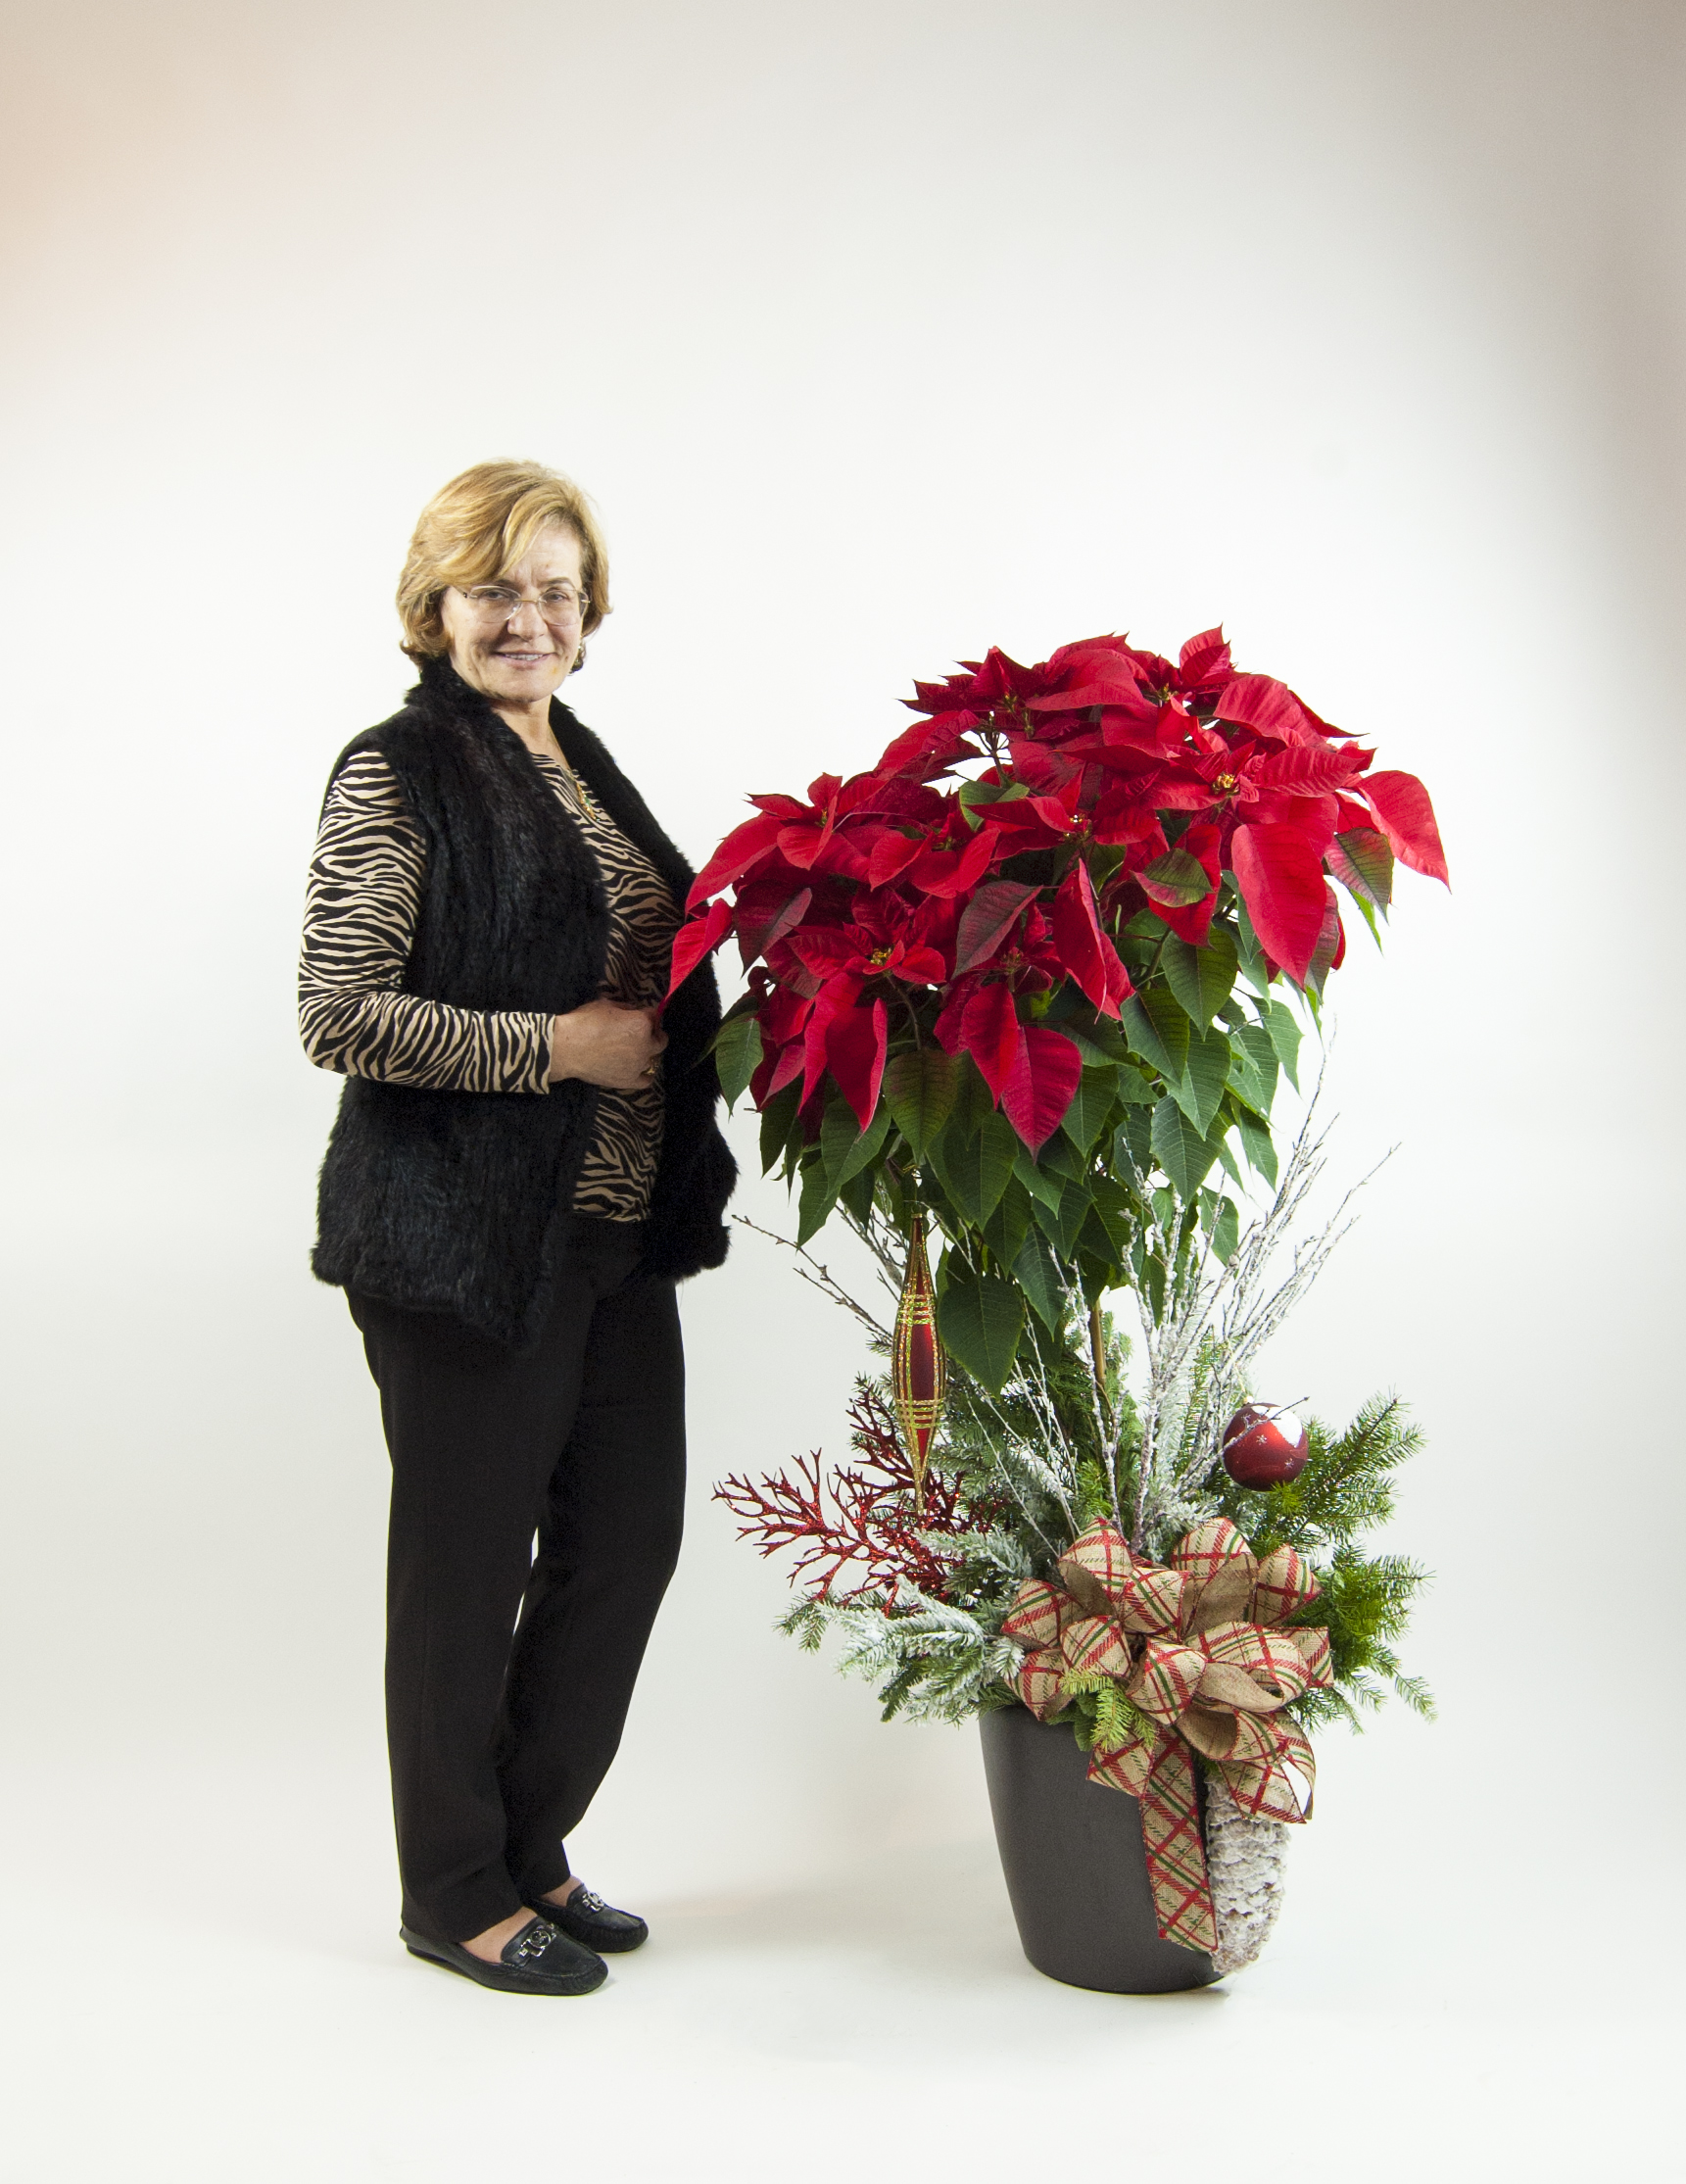 Tall Christmas red pointsettia